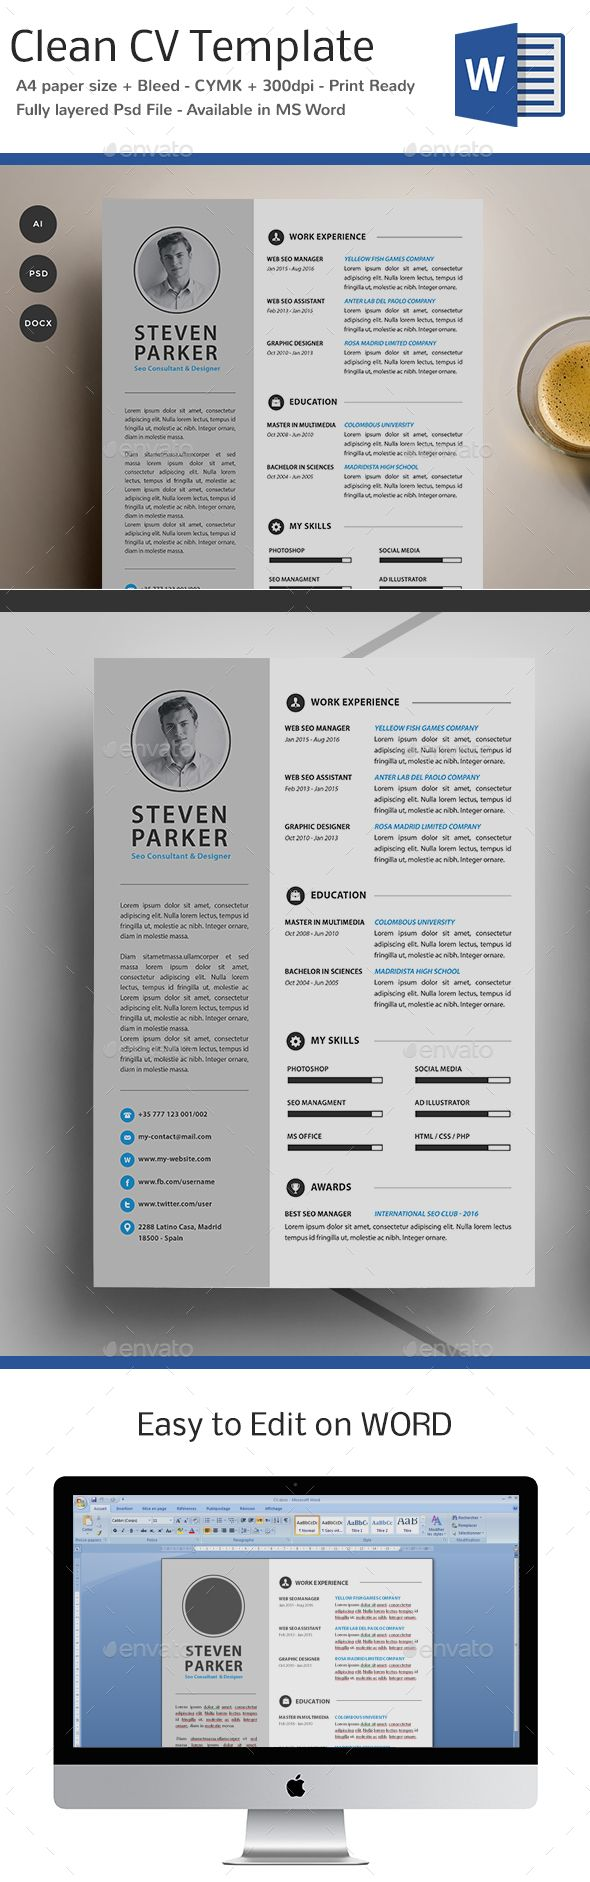 33 best CV images on Pinterest | Cv template, Design resume and ...